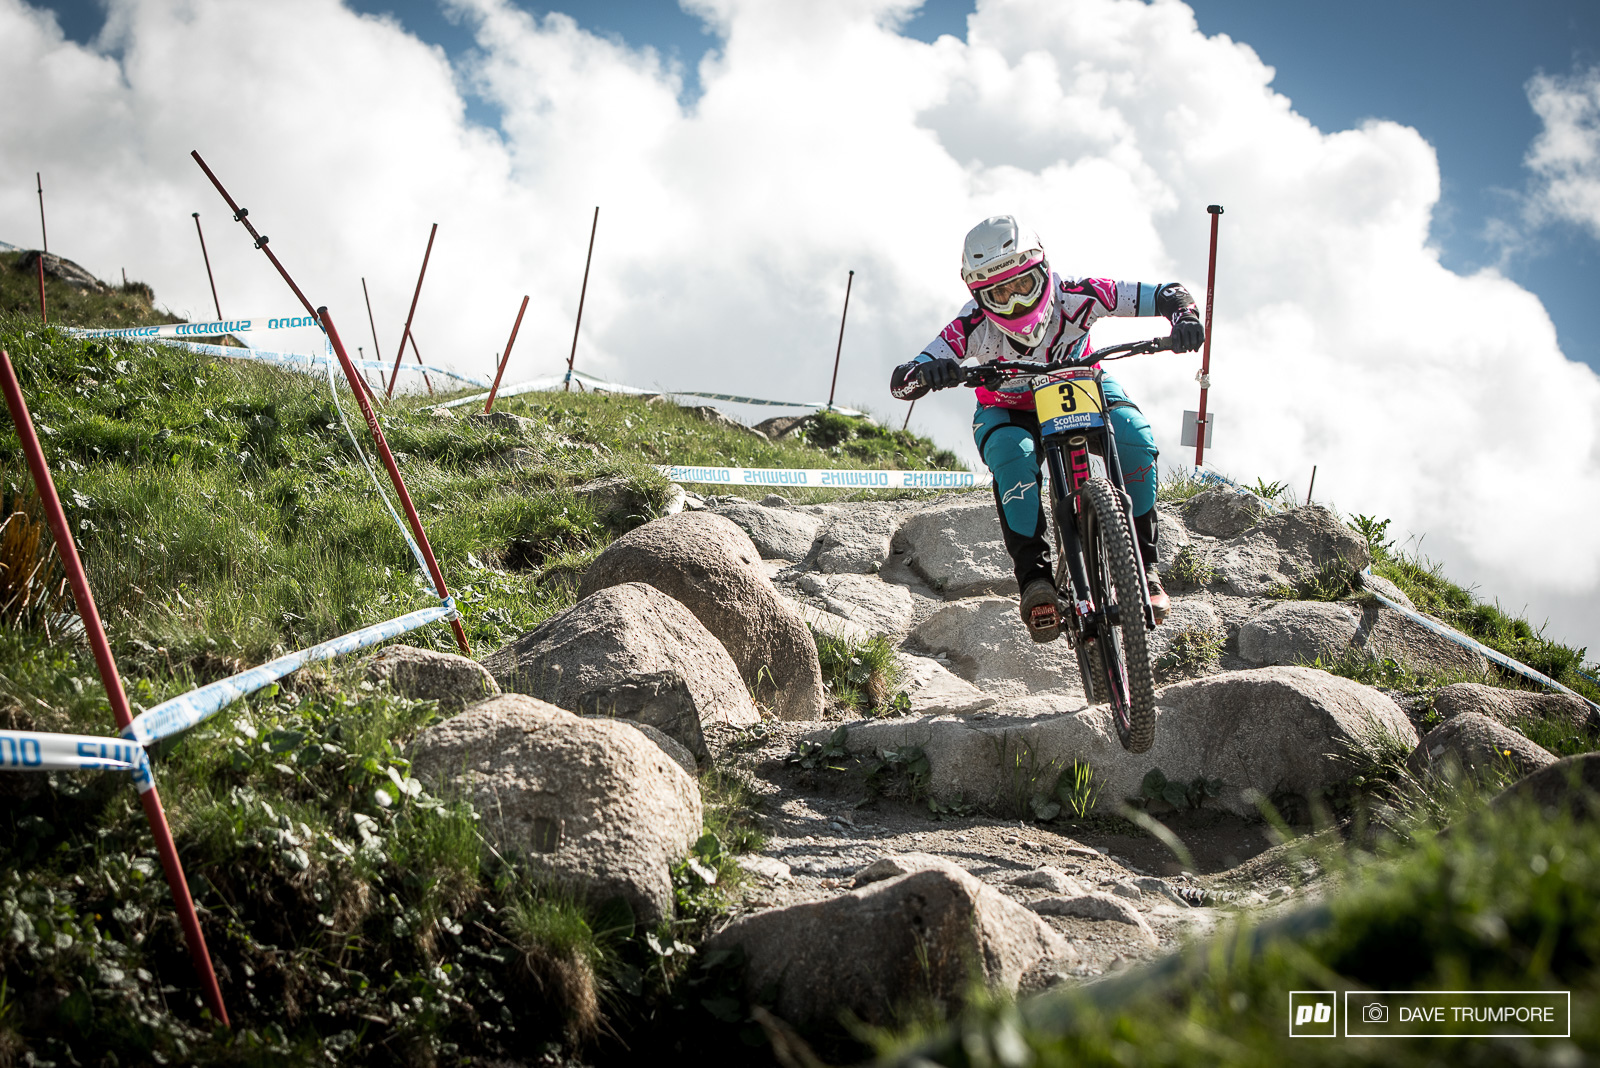 AF fter a 2nd to kick off the season in Lourdes Tracey Hannah is looking to keep the consistency going in Scotland.